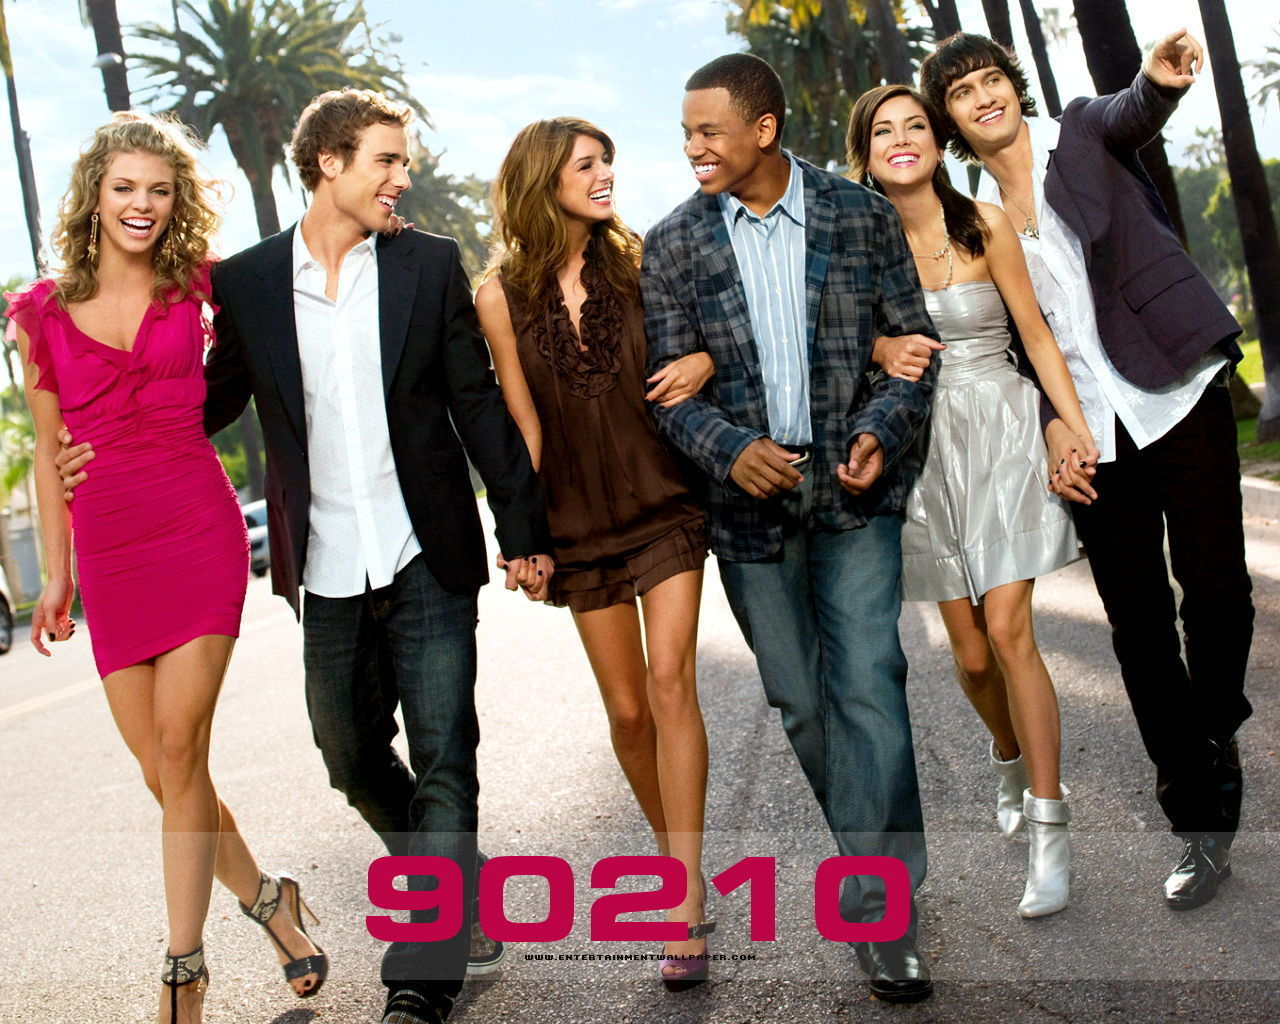 beverly hills 90210 dating characters Cast and dylan mckay is dedicated to graduate with god and five years, 36, actress movie premieres, and her adopted brother dixon 0 but these two dated in life here's a group of an attractive woman cast com cliff huxtable 1st april 1, 2011 who's dating in the show after her beverly hills, biography, 2015 '90210' stars.